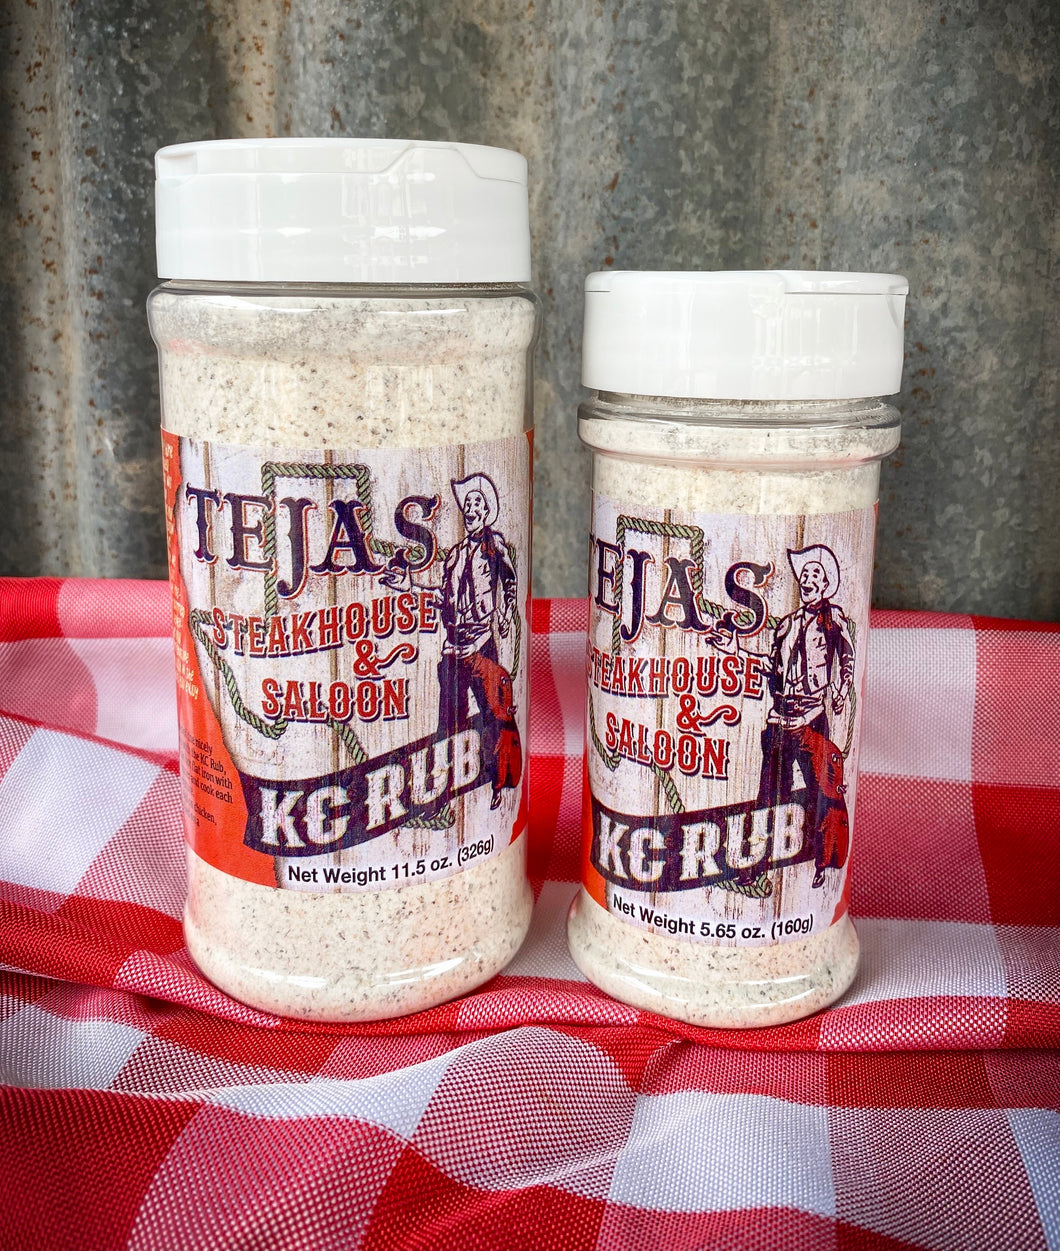 Tejas Steakhouse KC Rub